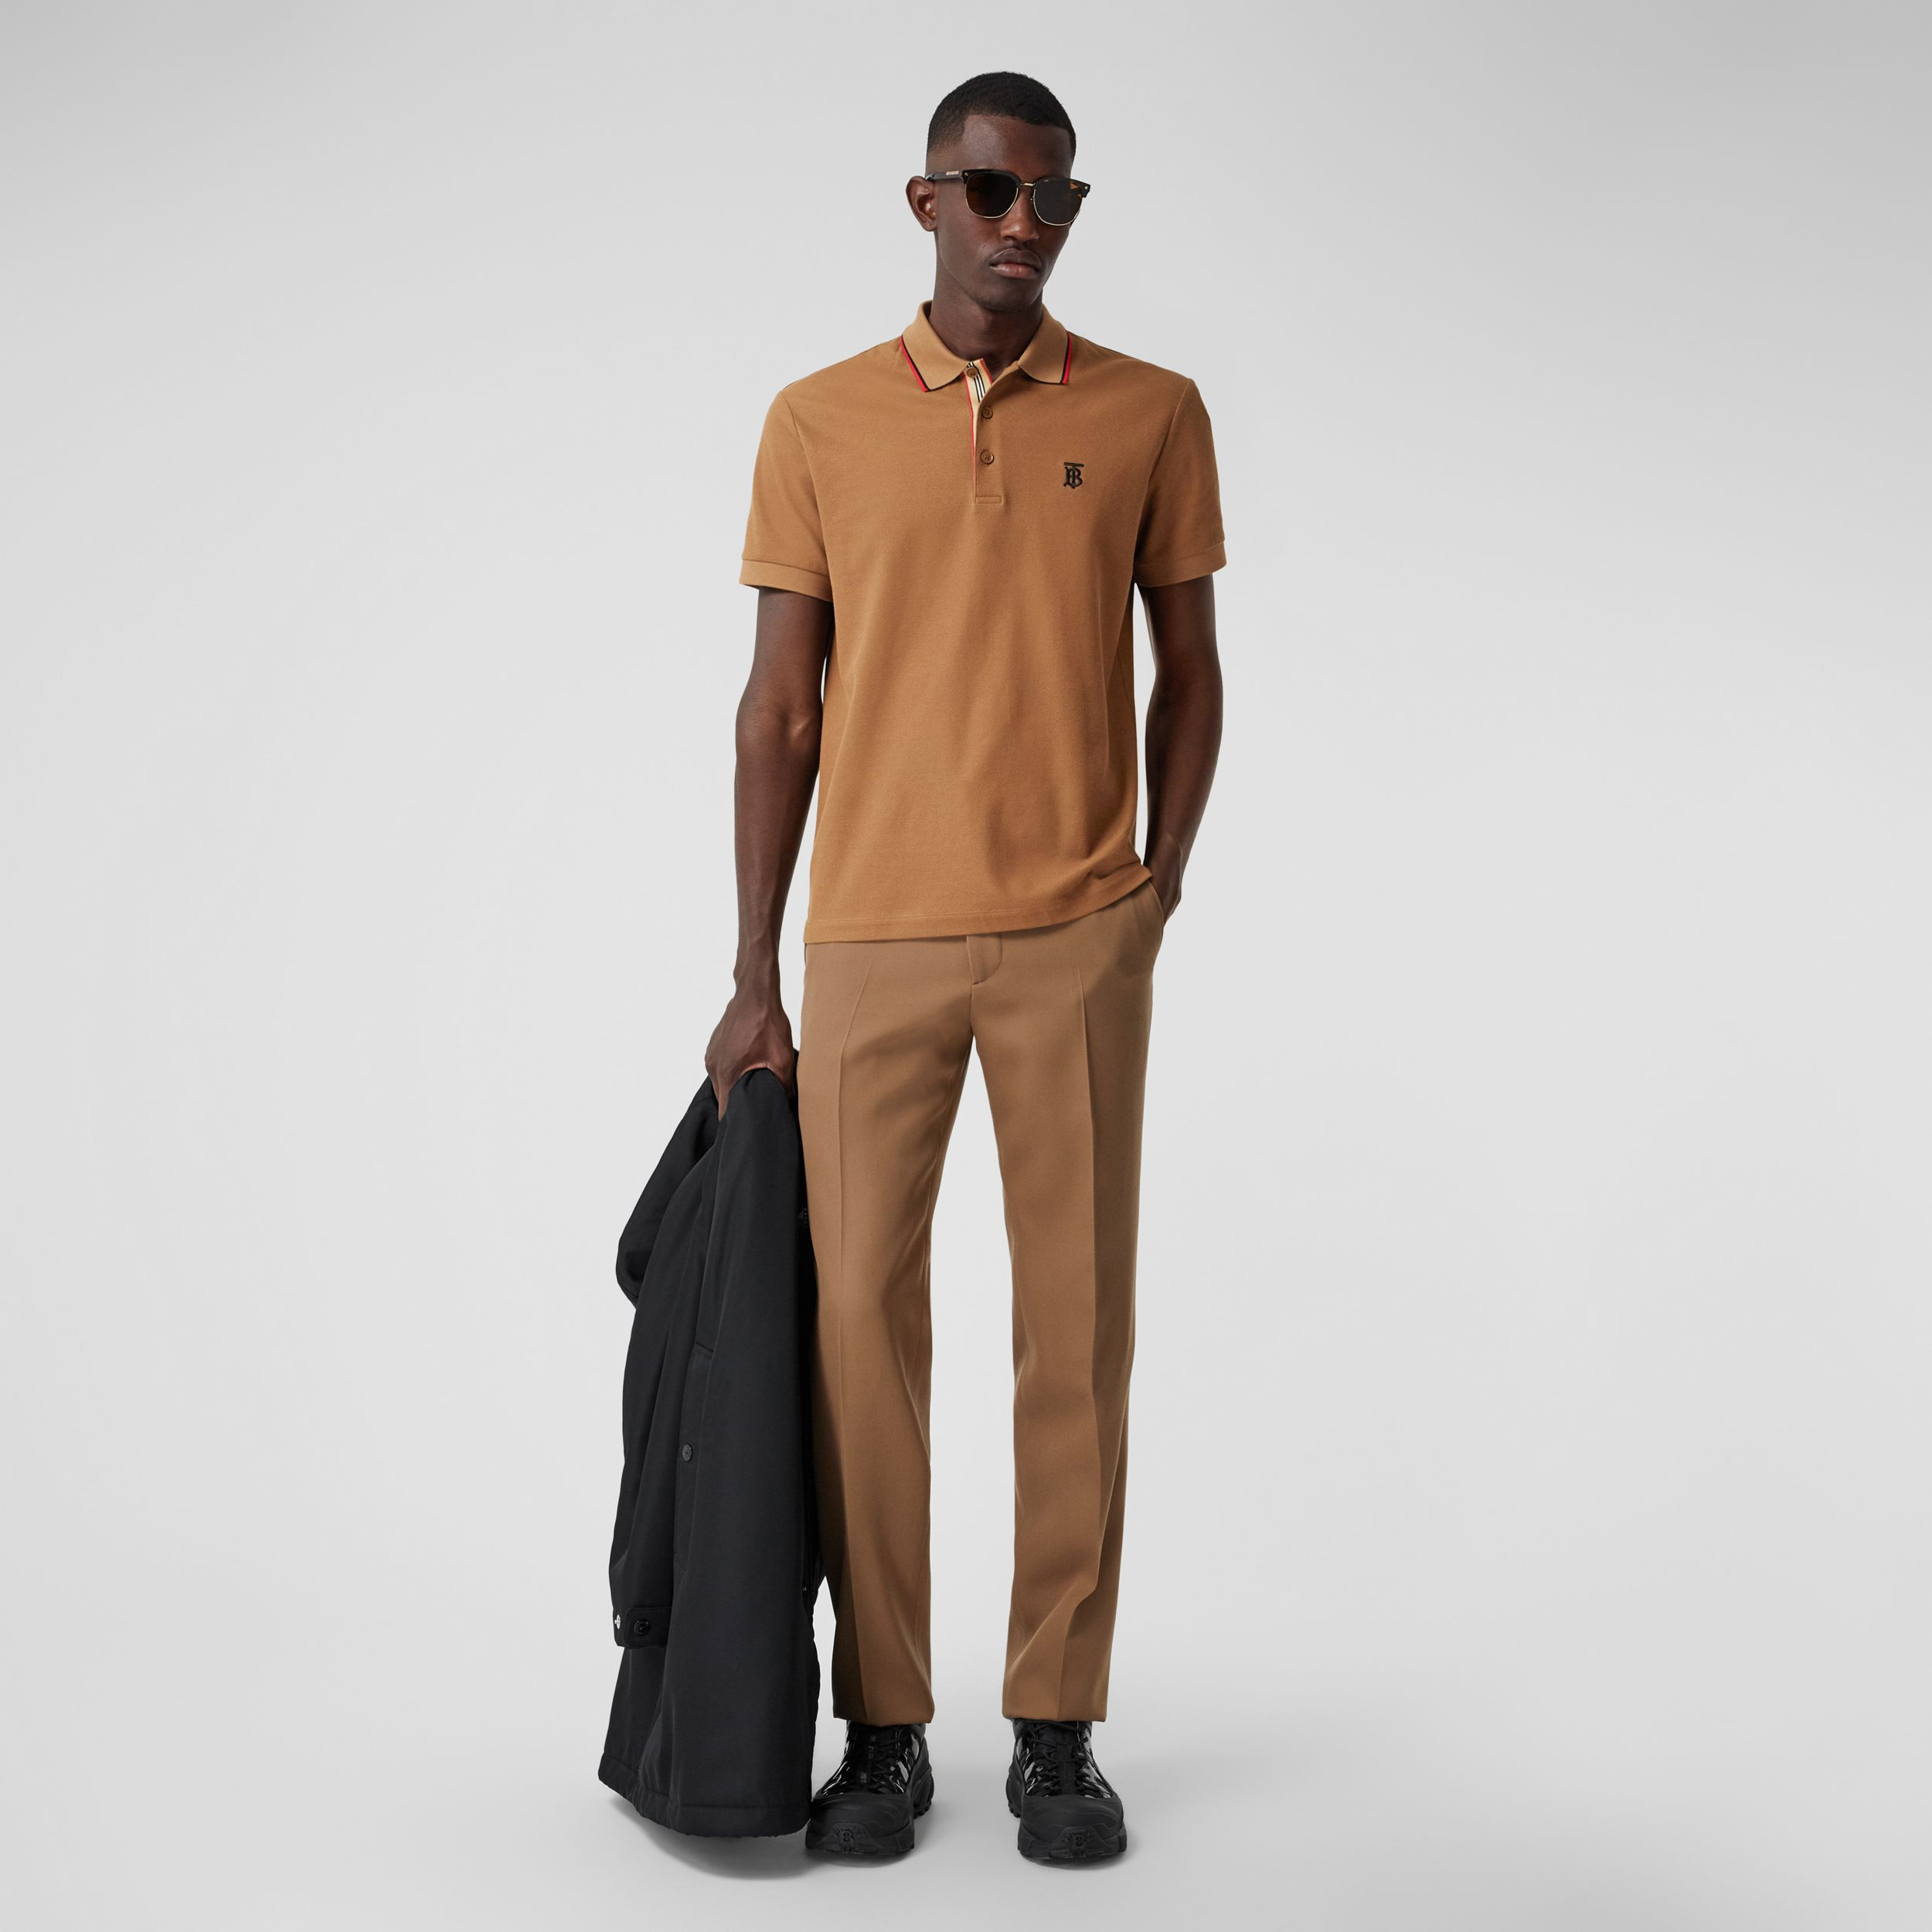 Monogram Motif Cotton Piqué Polo Shirt in Warm Brown - Men | Burberry - 4